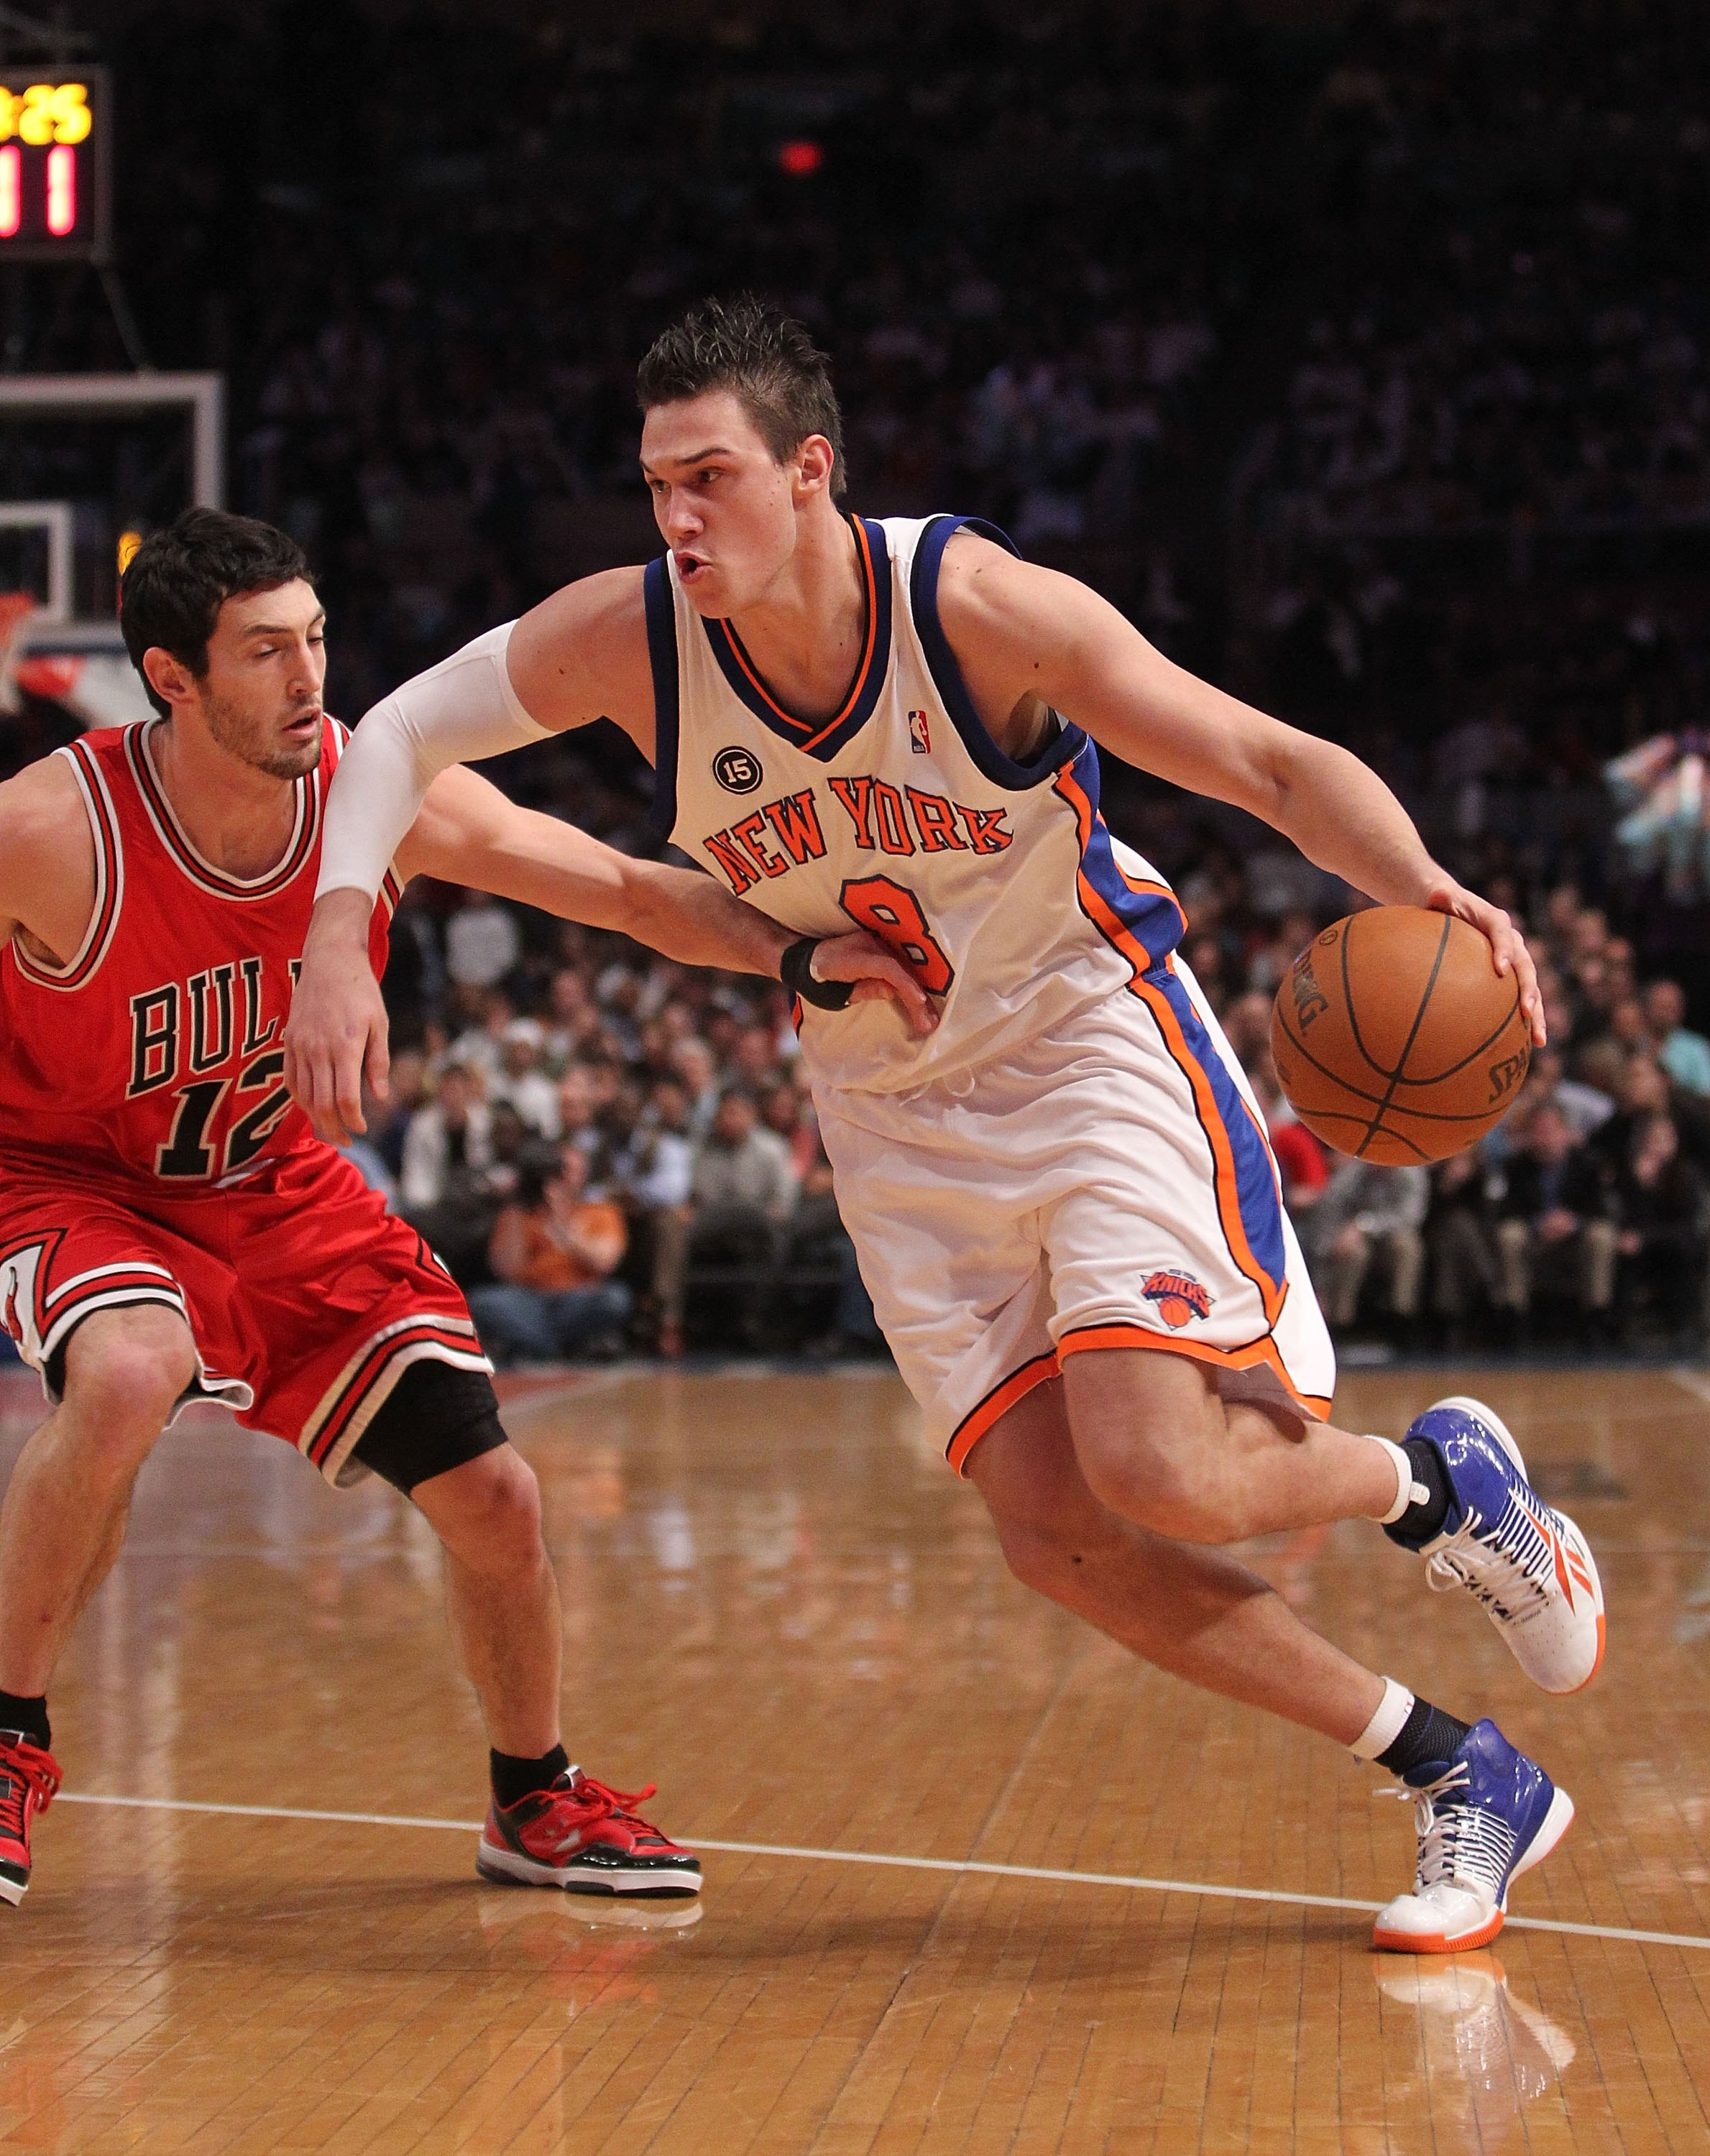 NEW YORK - FEBRUARY 17:  Danilo Gallinari #8 of the New York Knicks dribbles against the Chicago Bulls at Madison Square Garden on February 17, 2010 in New York, New York. NOTE TO USER: User expressly acknowledges and agrees that, by downloading and or us